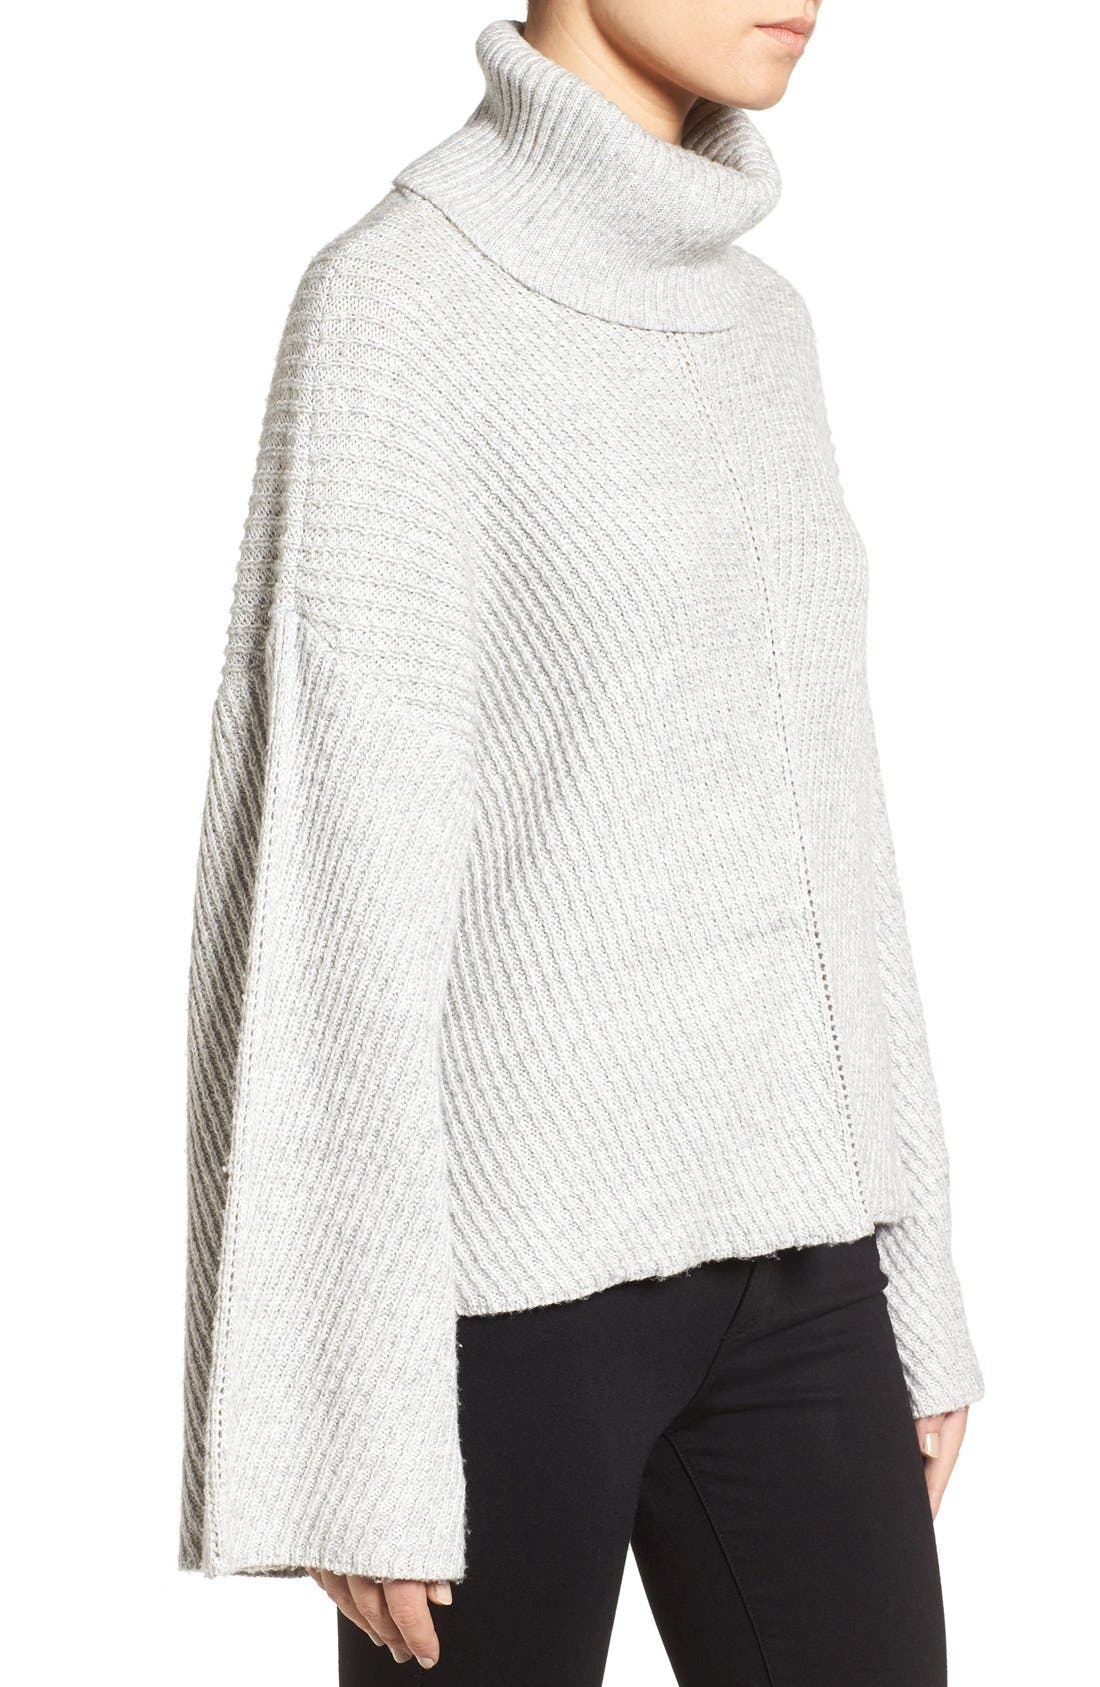 Phil Slouchy Sweater,                             Alternate thumbnail 5, color,                             057